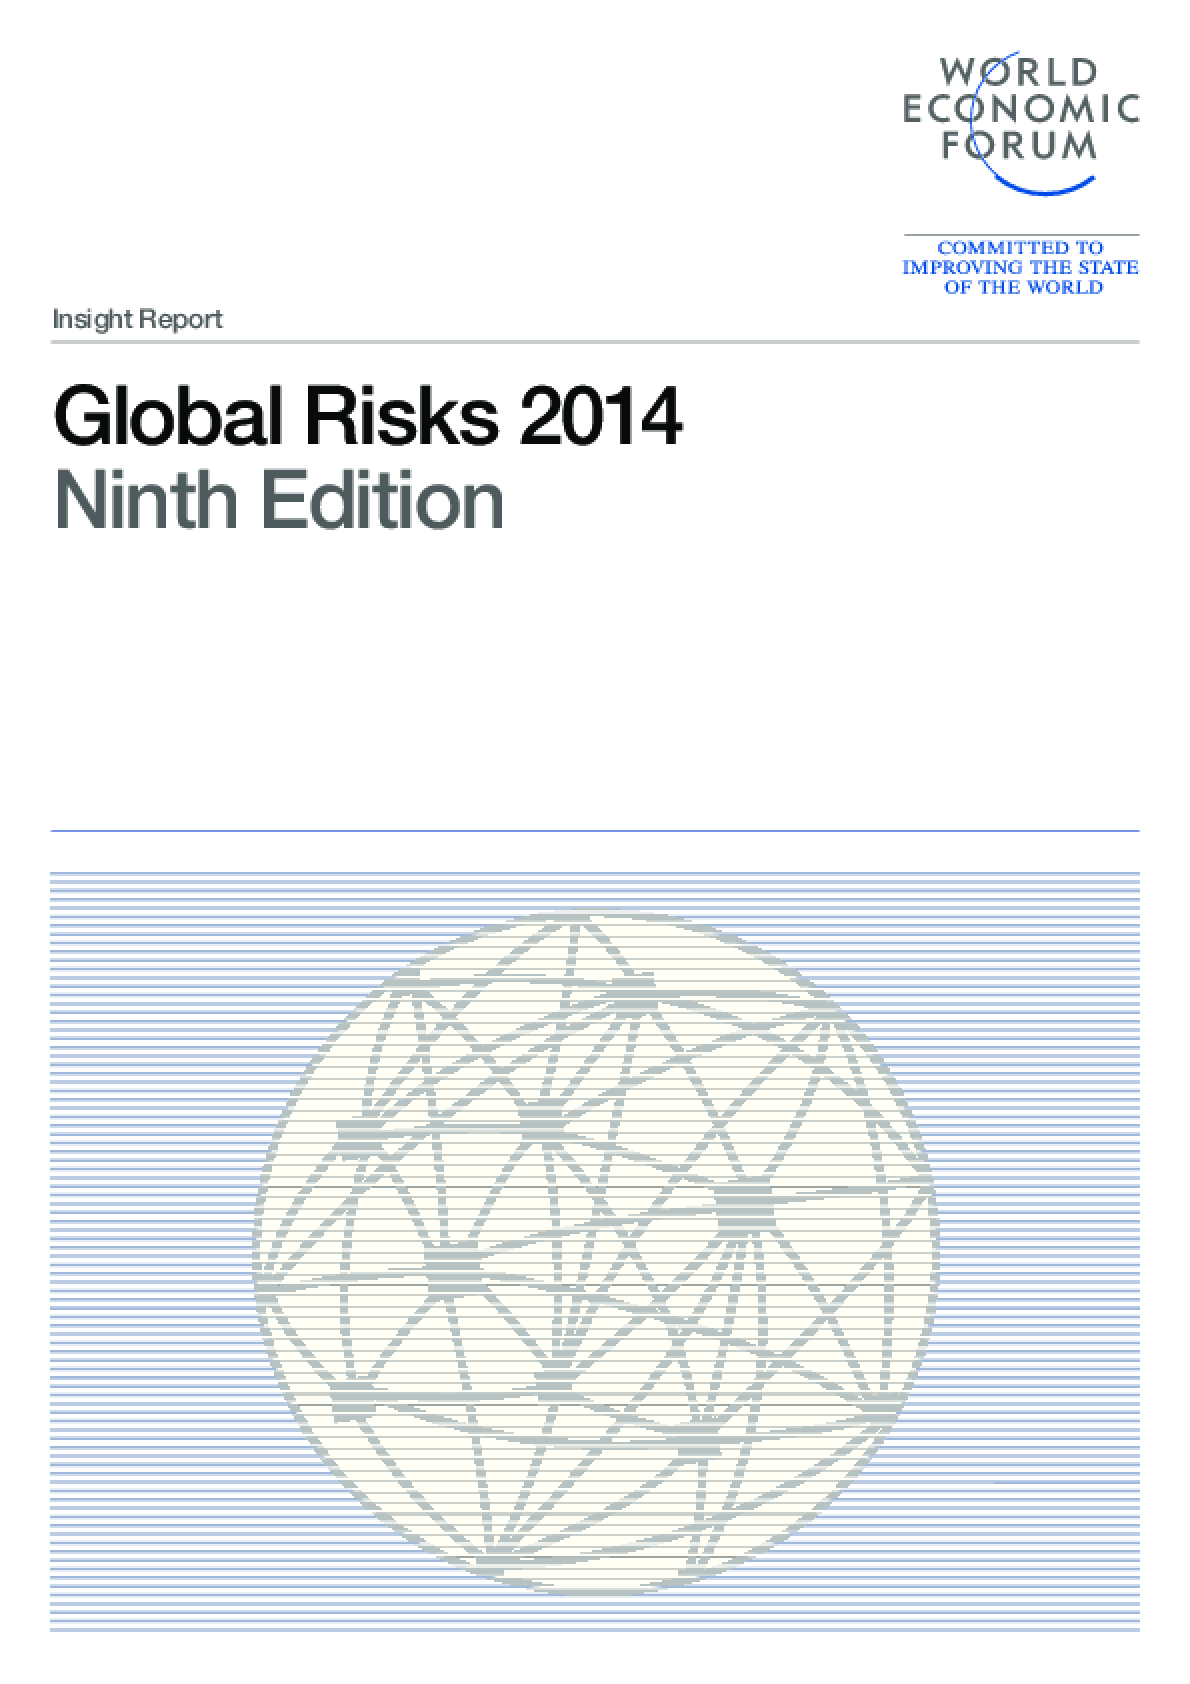 Global Risks 2014, Ninth Edition.